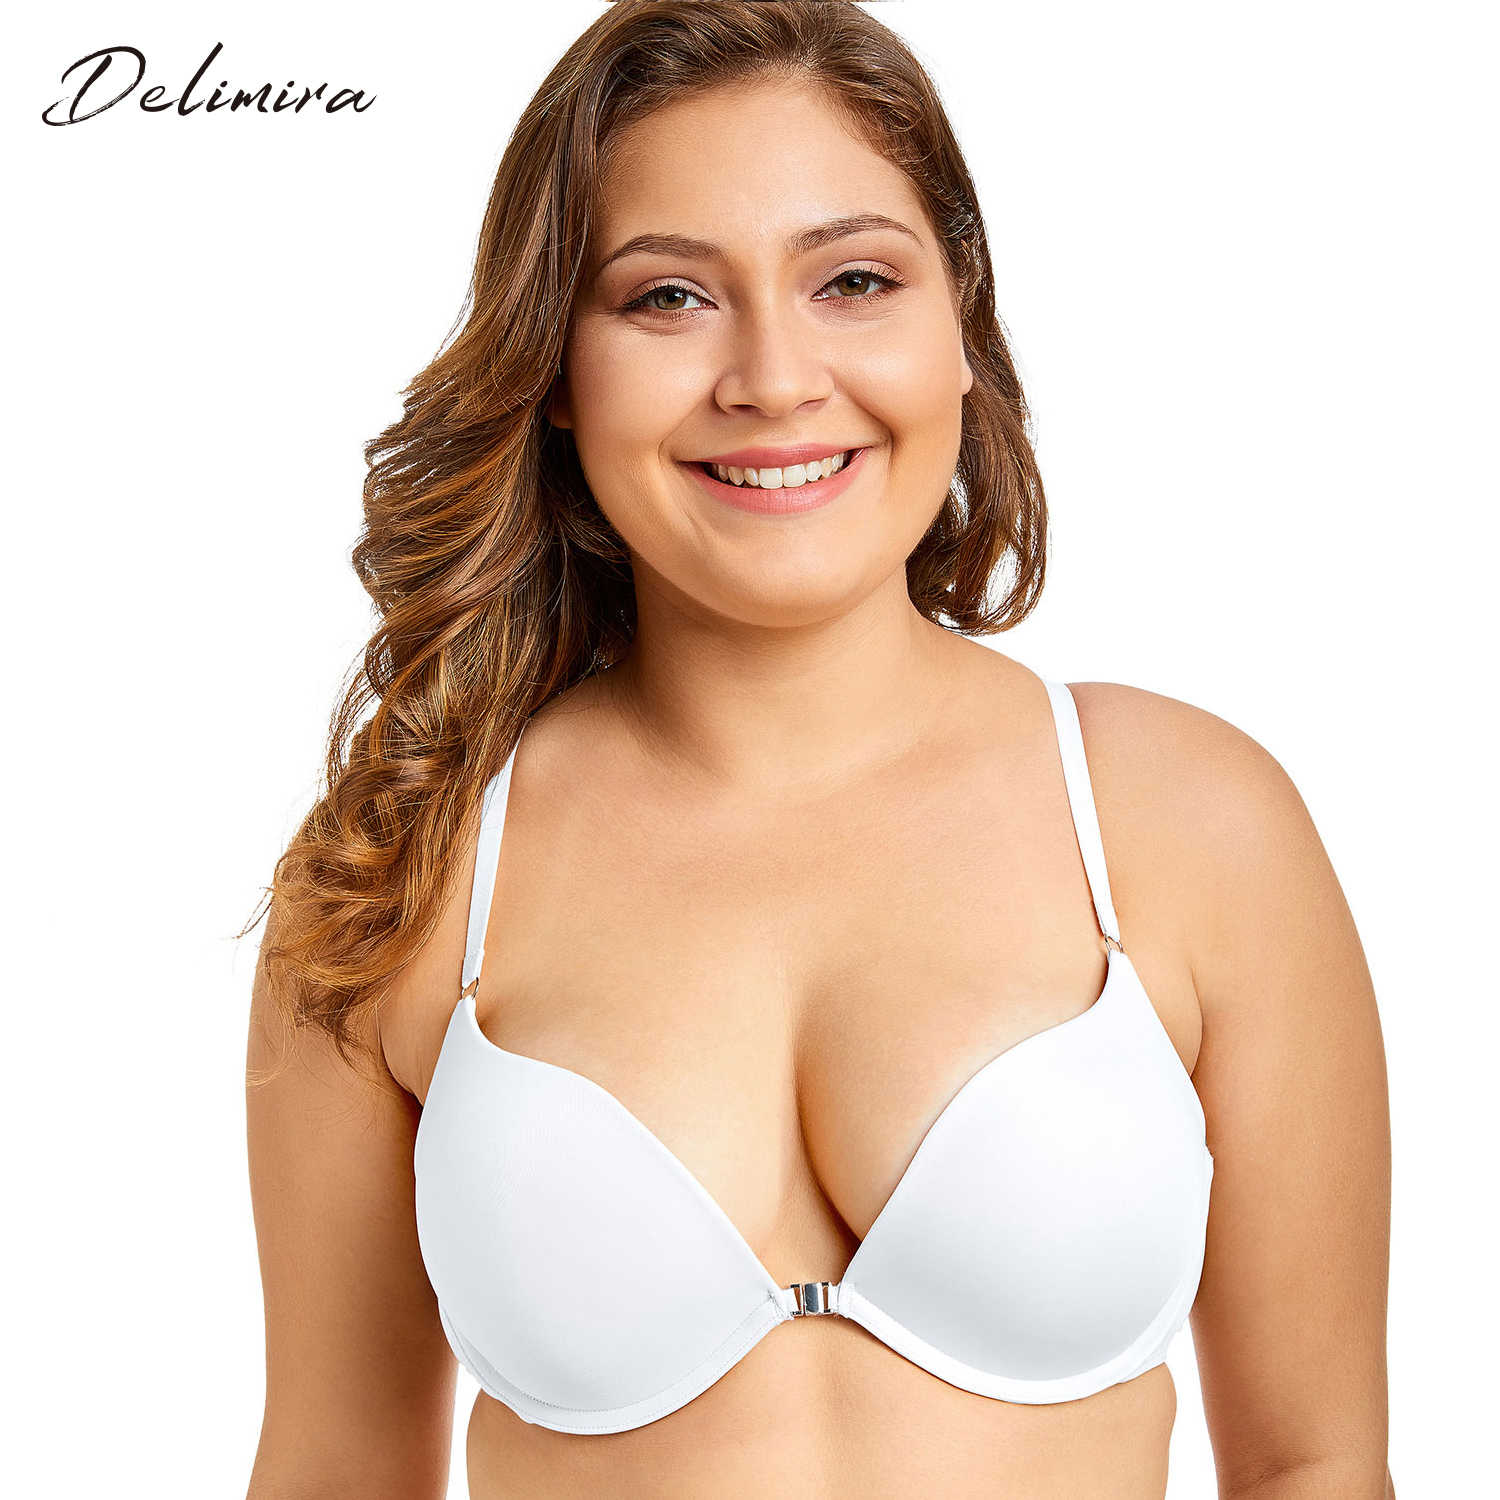 Delimira Women Sexy Front Closure Padded Push Up X-back Plunge Bra with Underwire